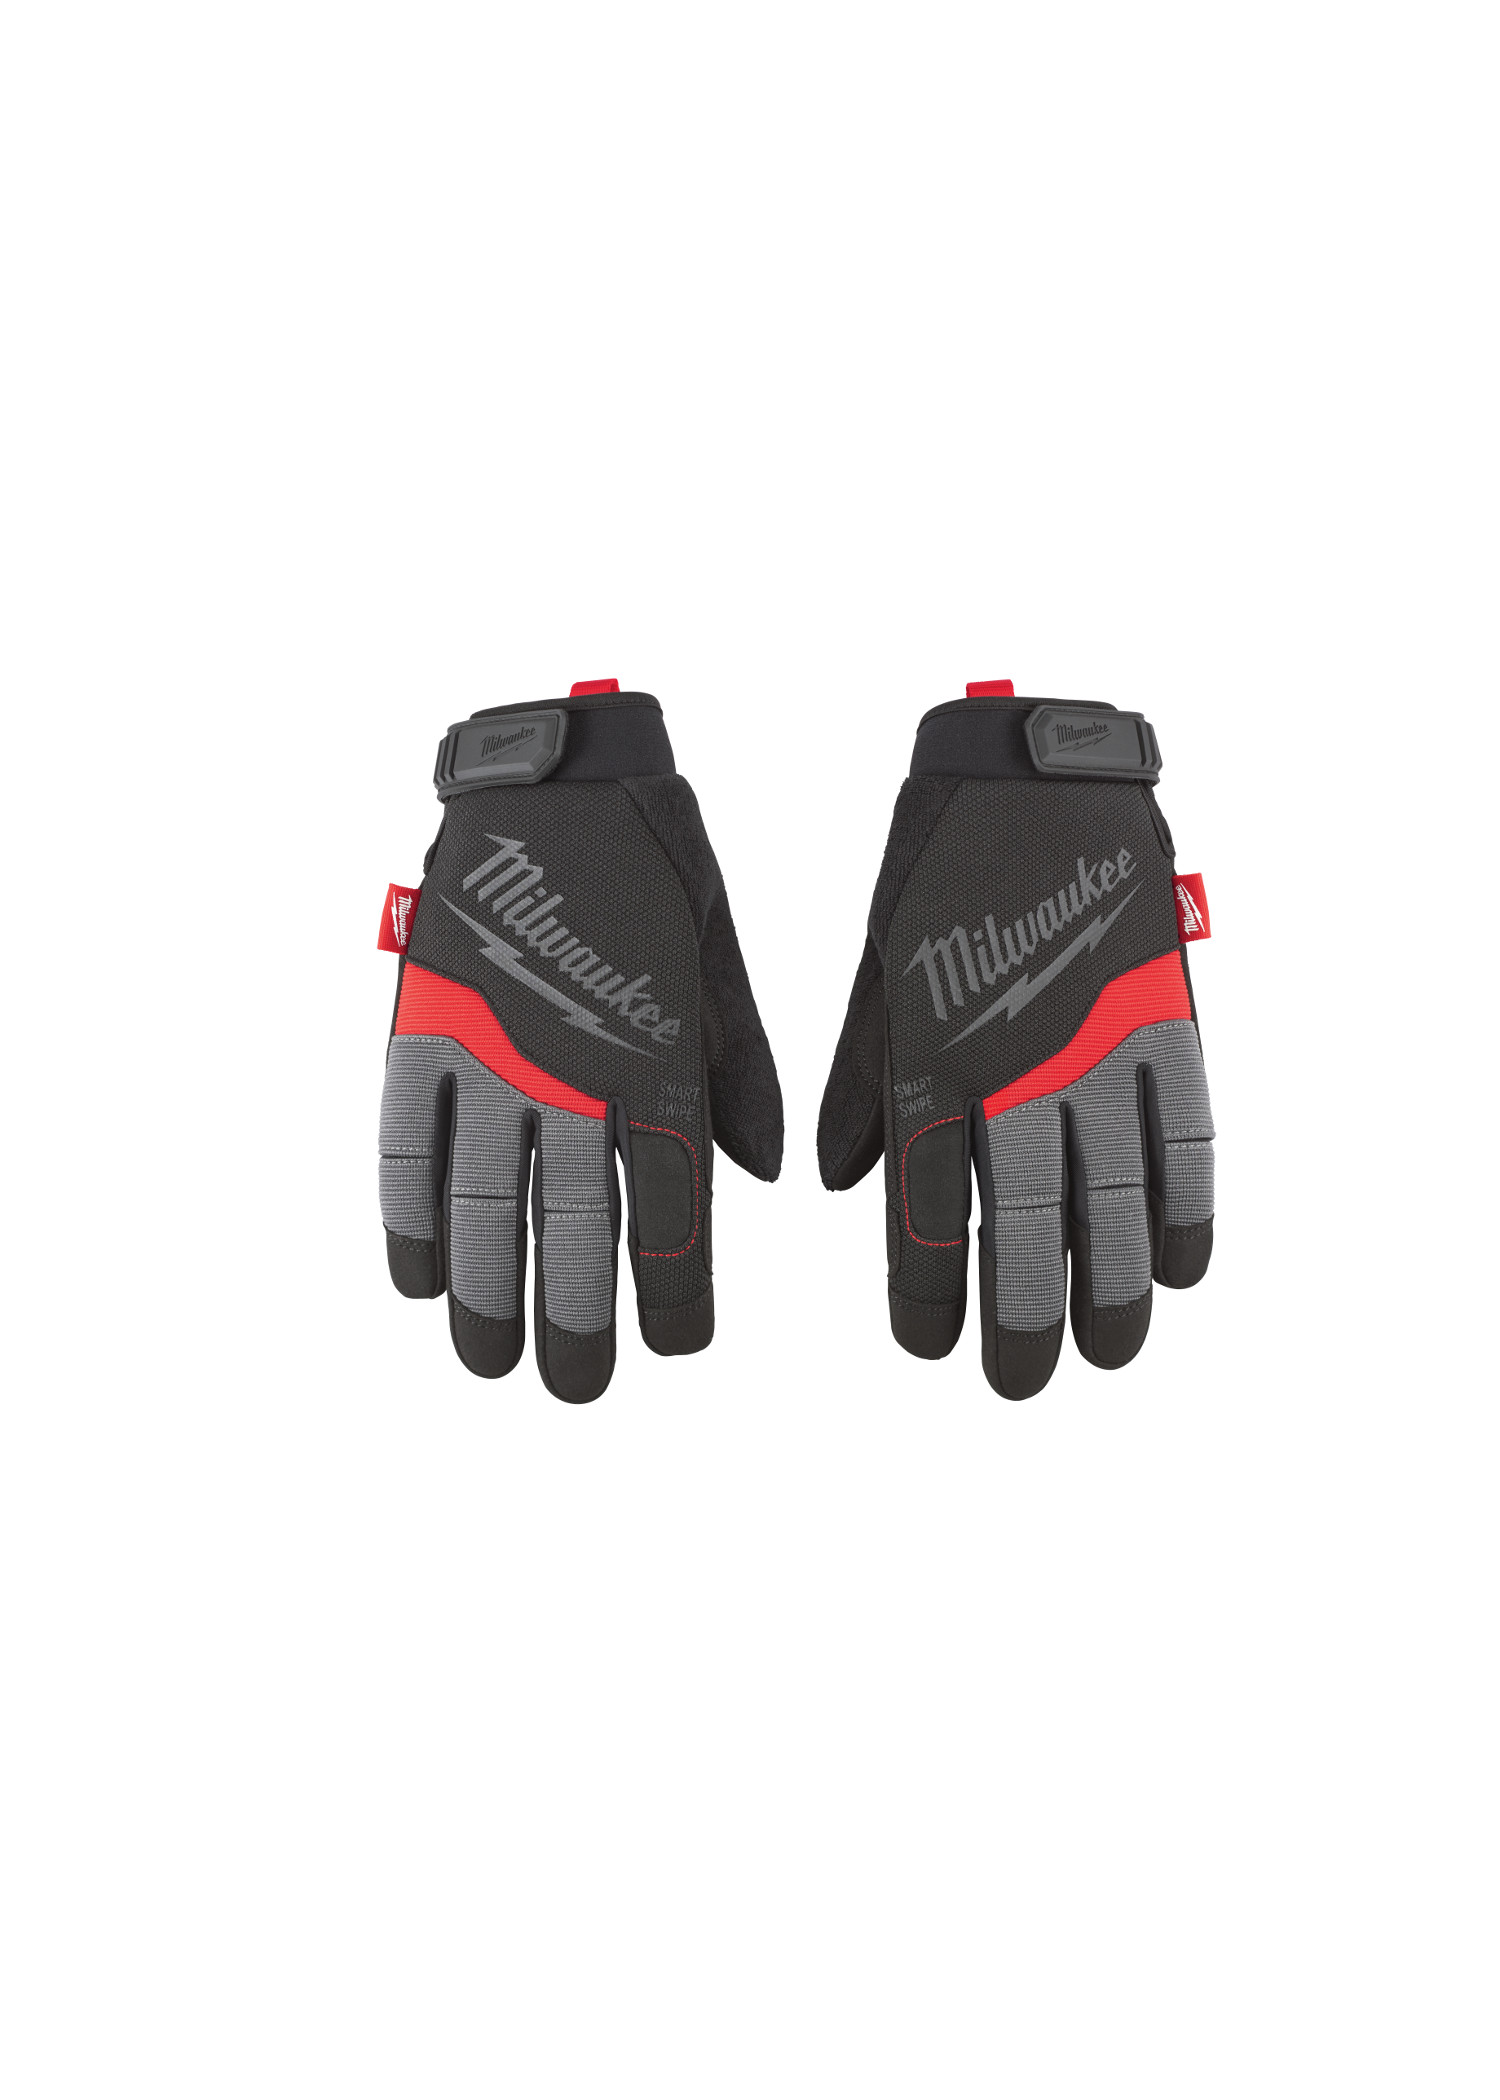 Milwaukee® 48-22-8724 General Purpose Performance Work Gloves, 2XL, Black/Red, High Dexterity Finger Tip, Synthetic Leather